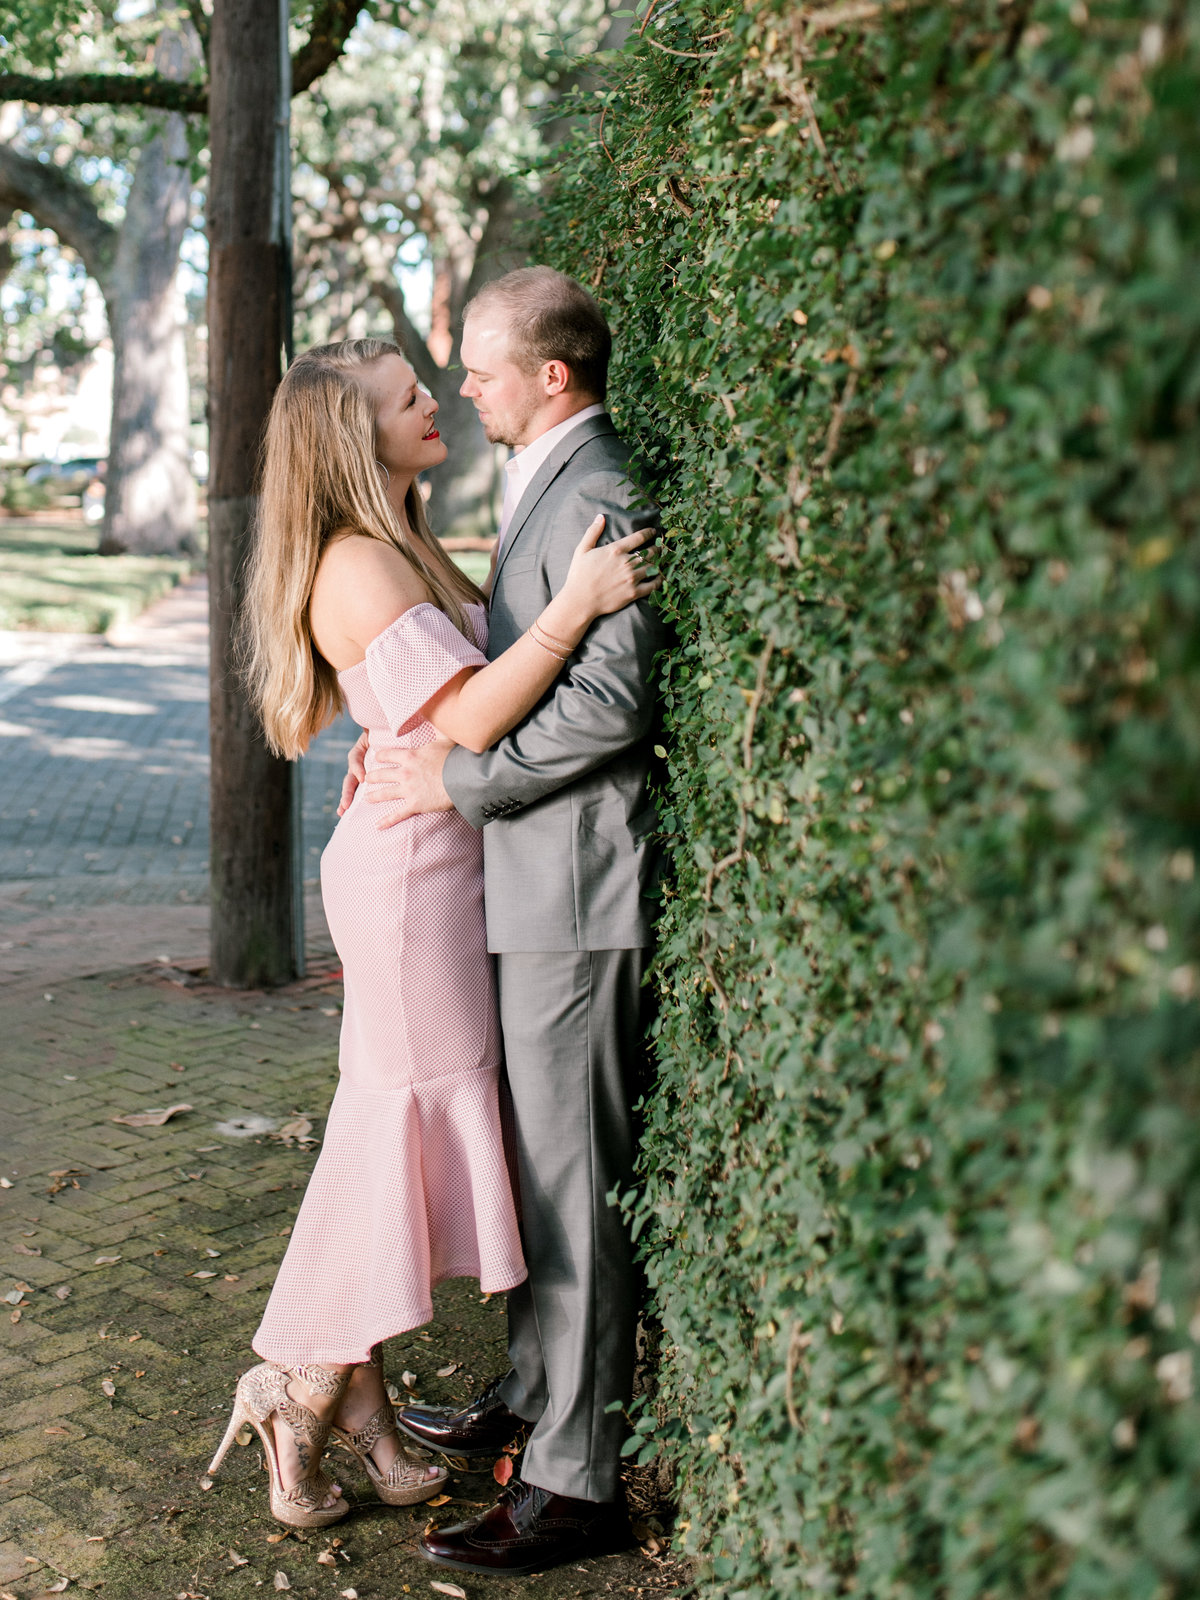 Couple leans against Ivy wall